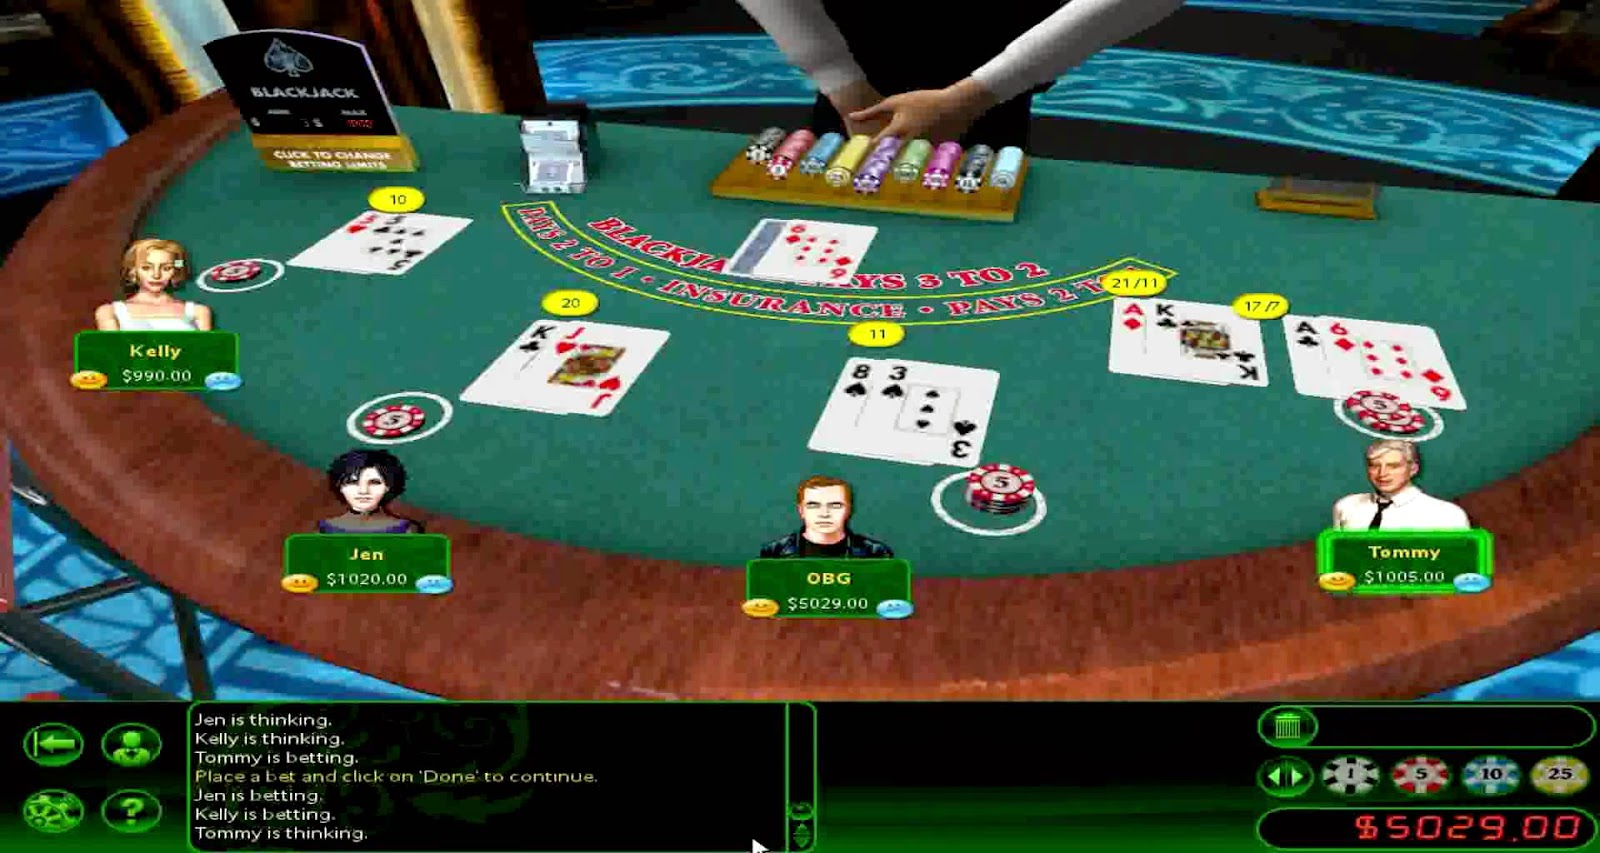 hoyle casino games 2015 crack download